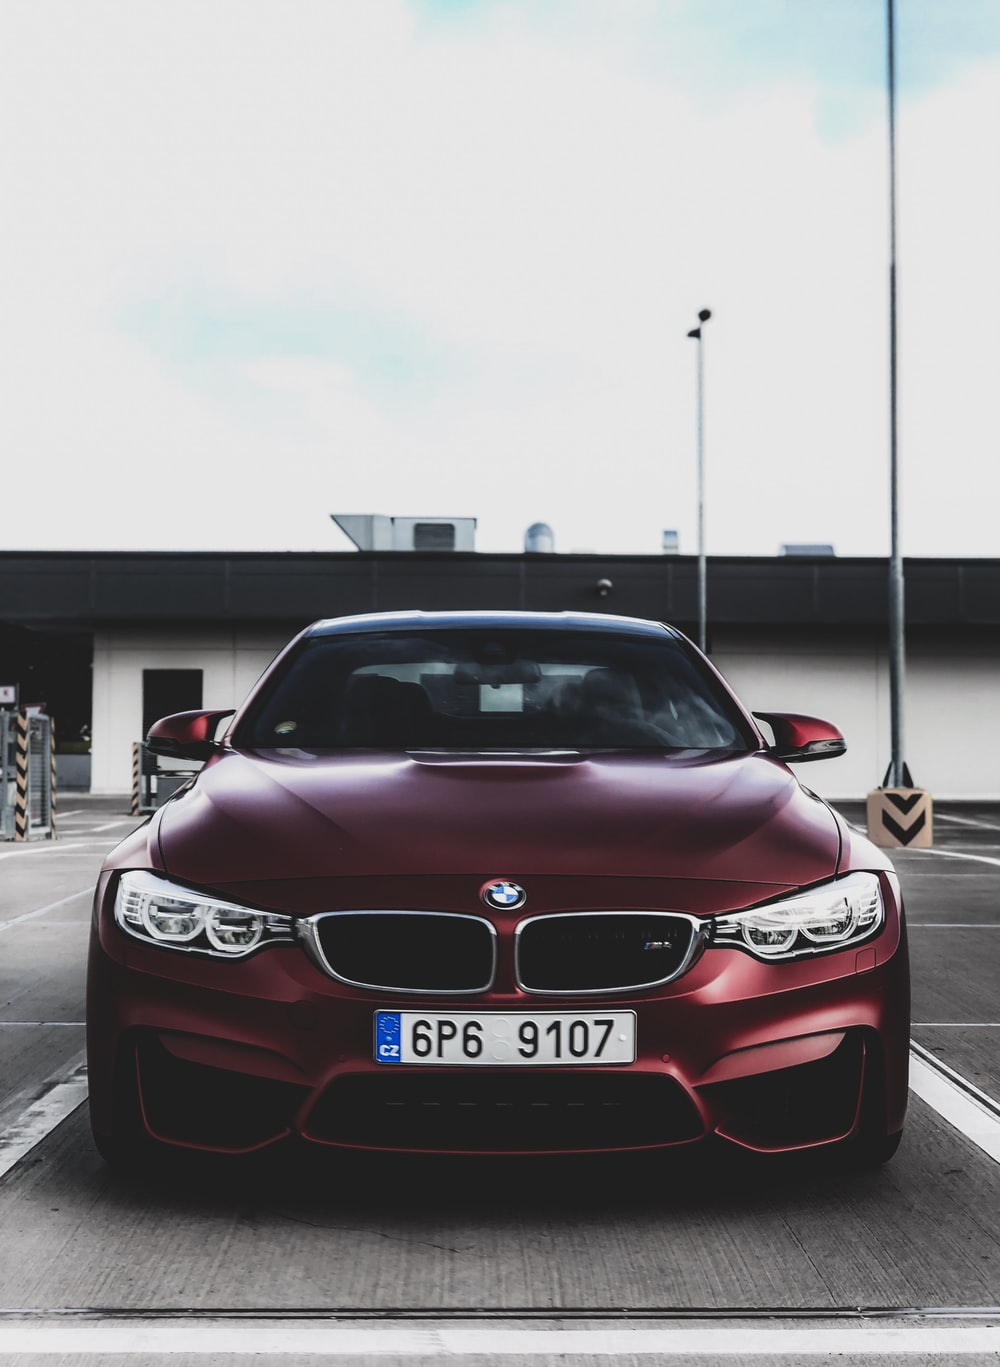 red BMW car parked near building